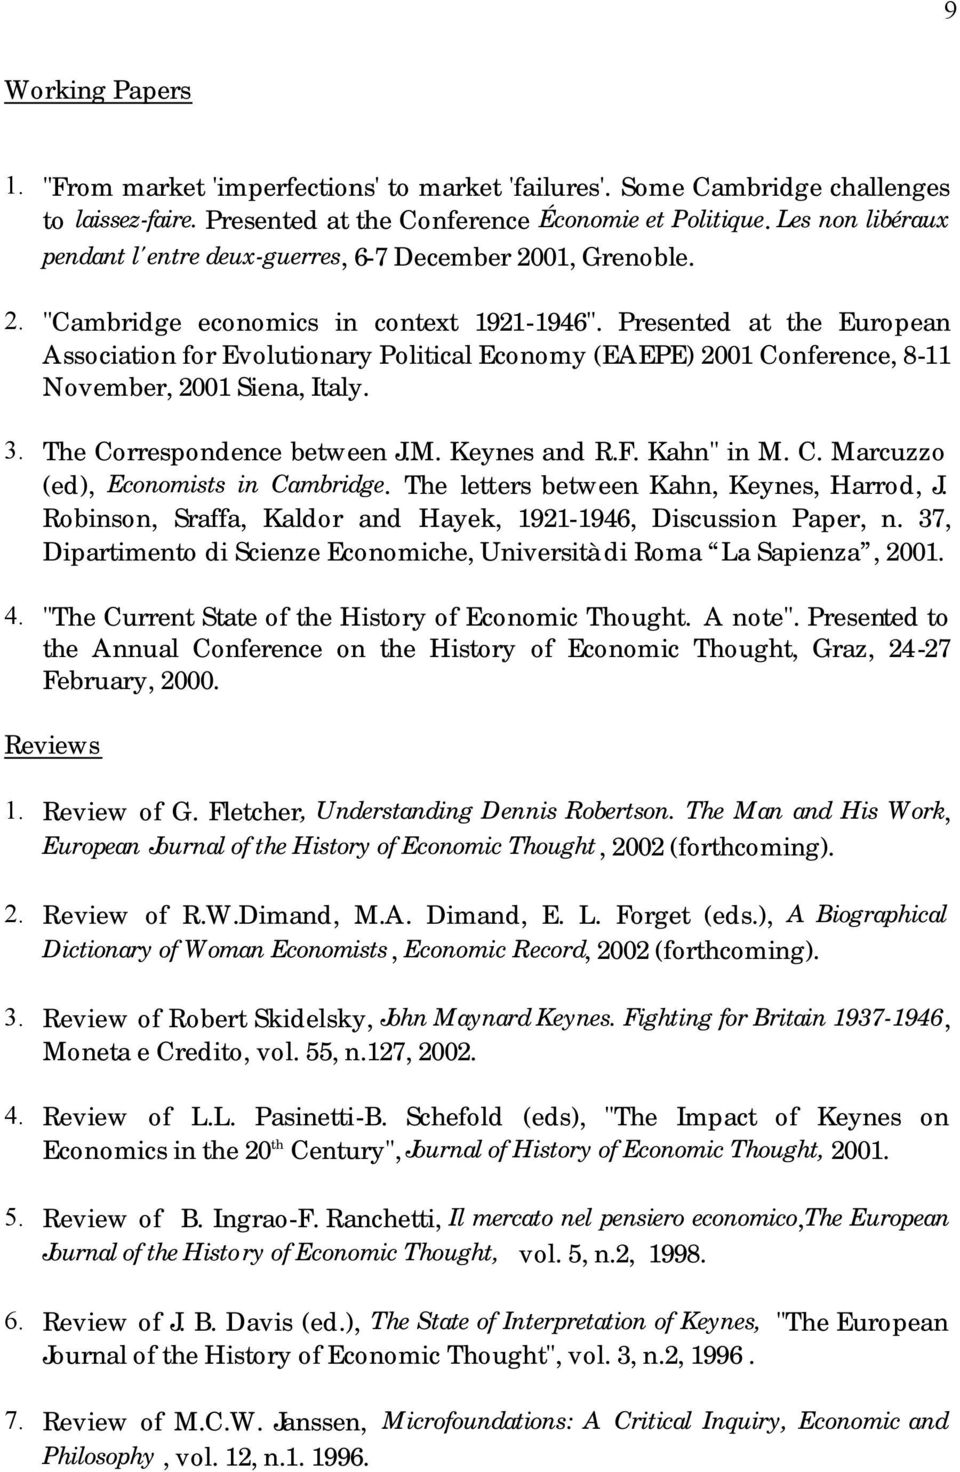 "Presented at the European Association for Evolutionary Political Economy (EAEPE) 2001 Conference, 8-11 November, 2001 Siena, Italy. 3. The Correspondence between J.M. Keynes and R.F. Kahn"" in M. C. Marcuzzo (ed), Economists in Cambridge."